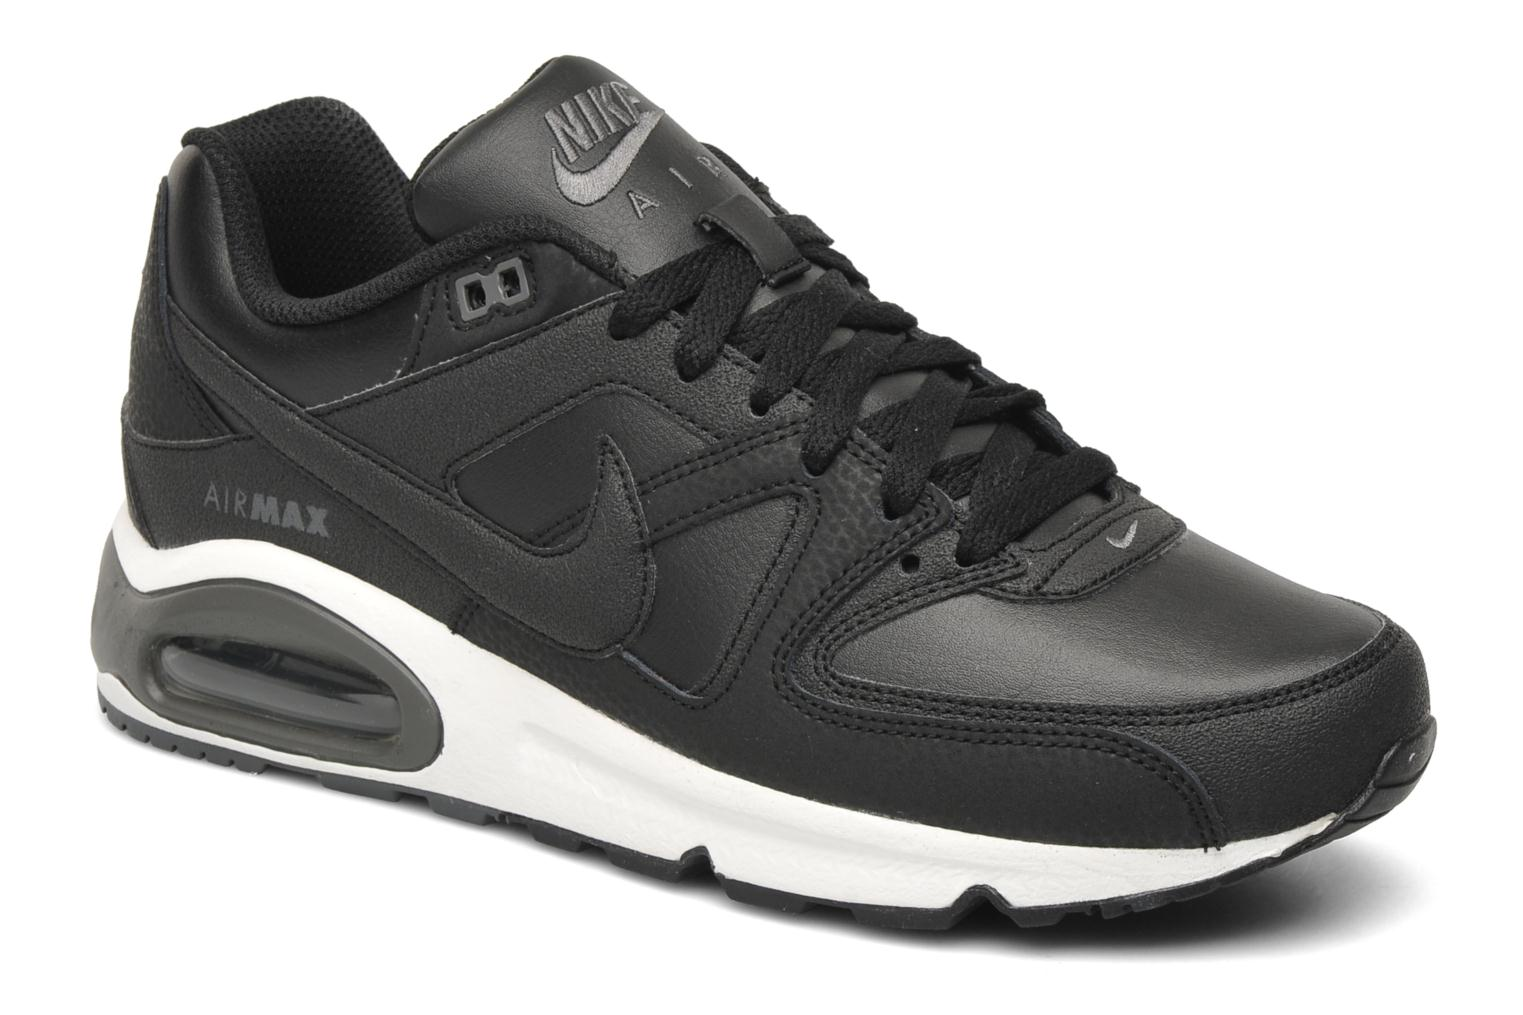 Acquista nike air max command leather OFF79% sconti